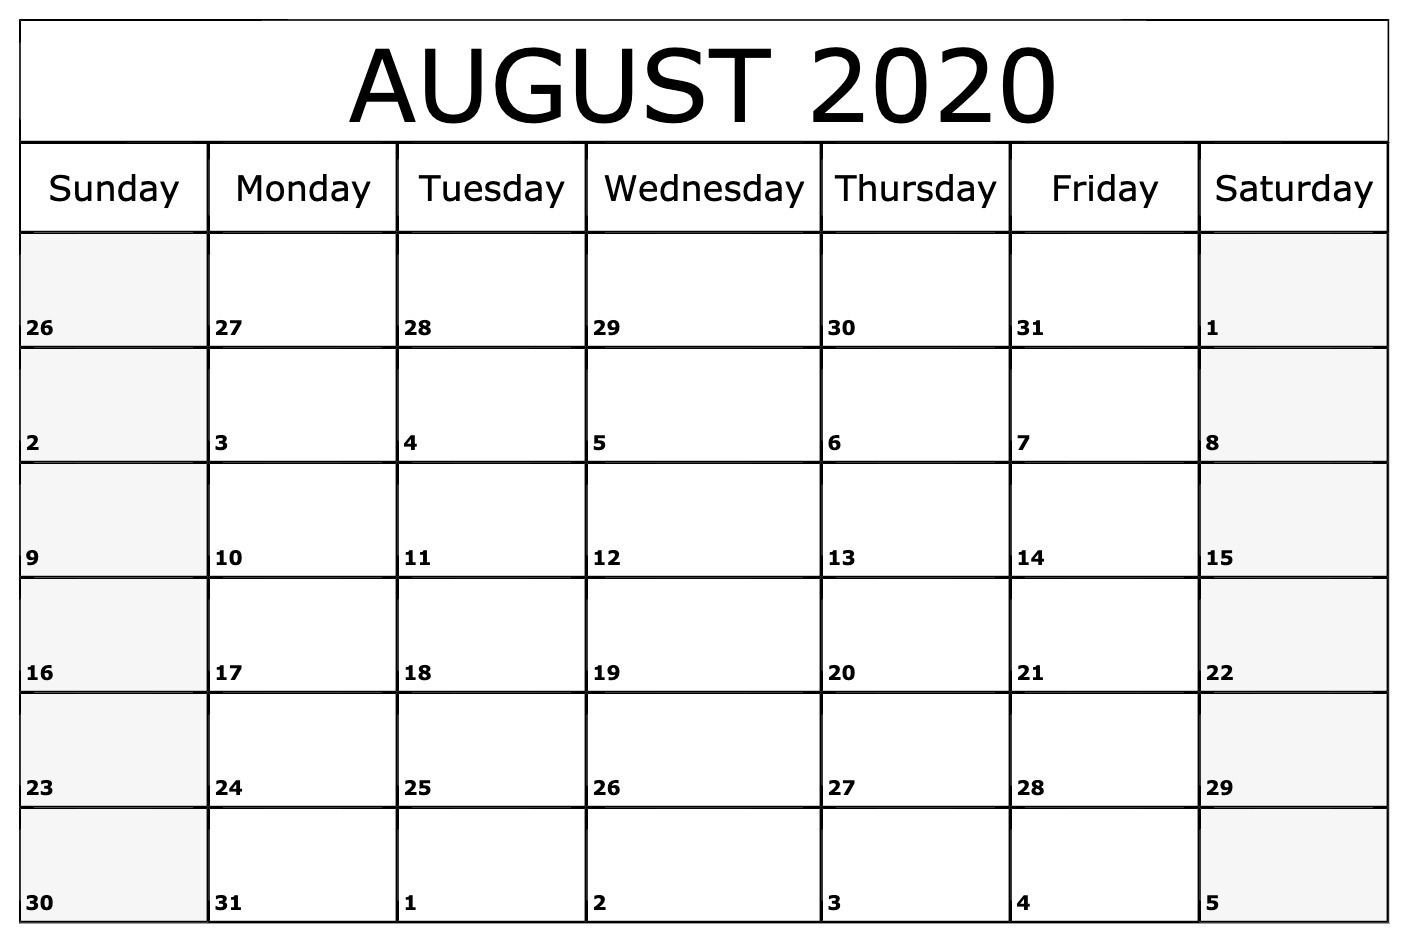 August 2020 Calendar Template | August Calendar, Blank-Monthly Calendar July August 2020